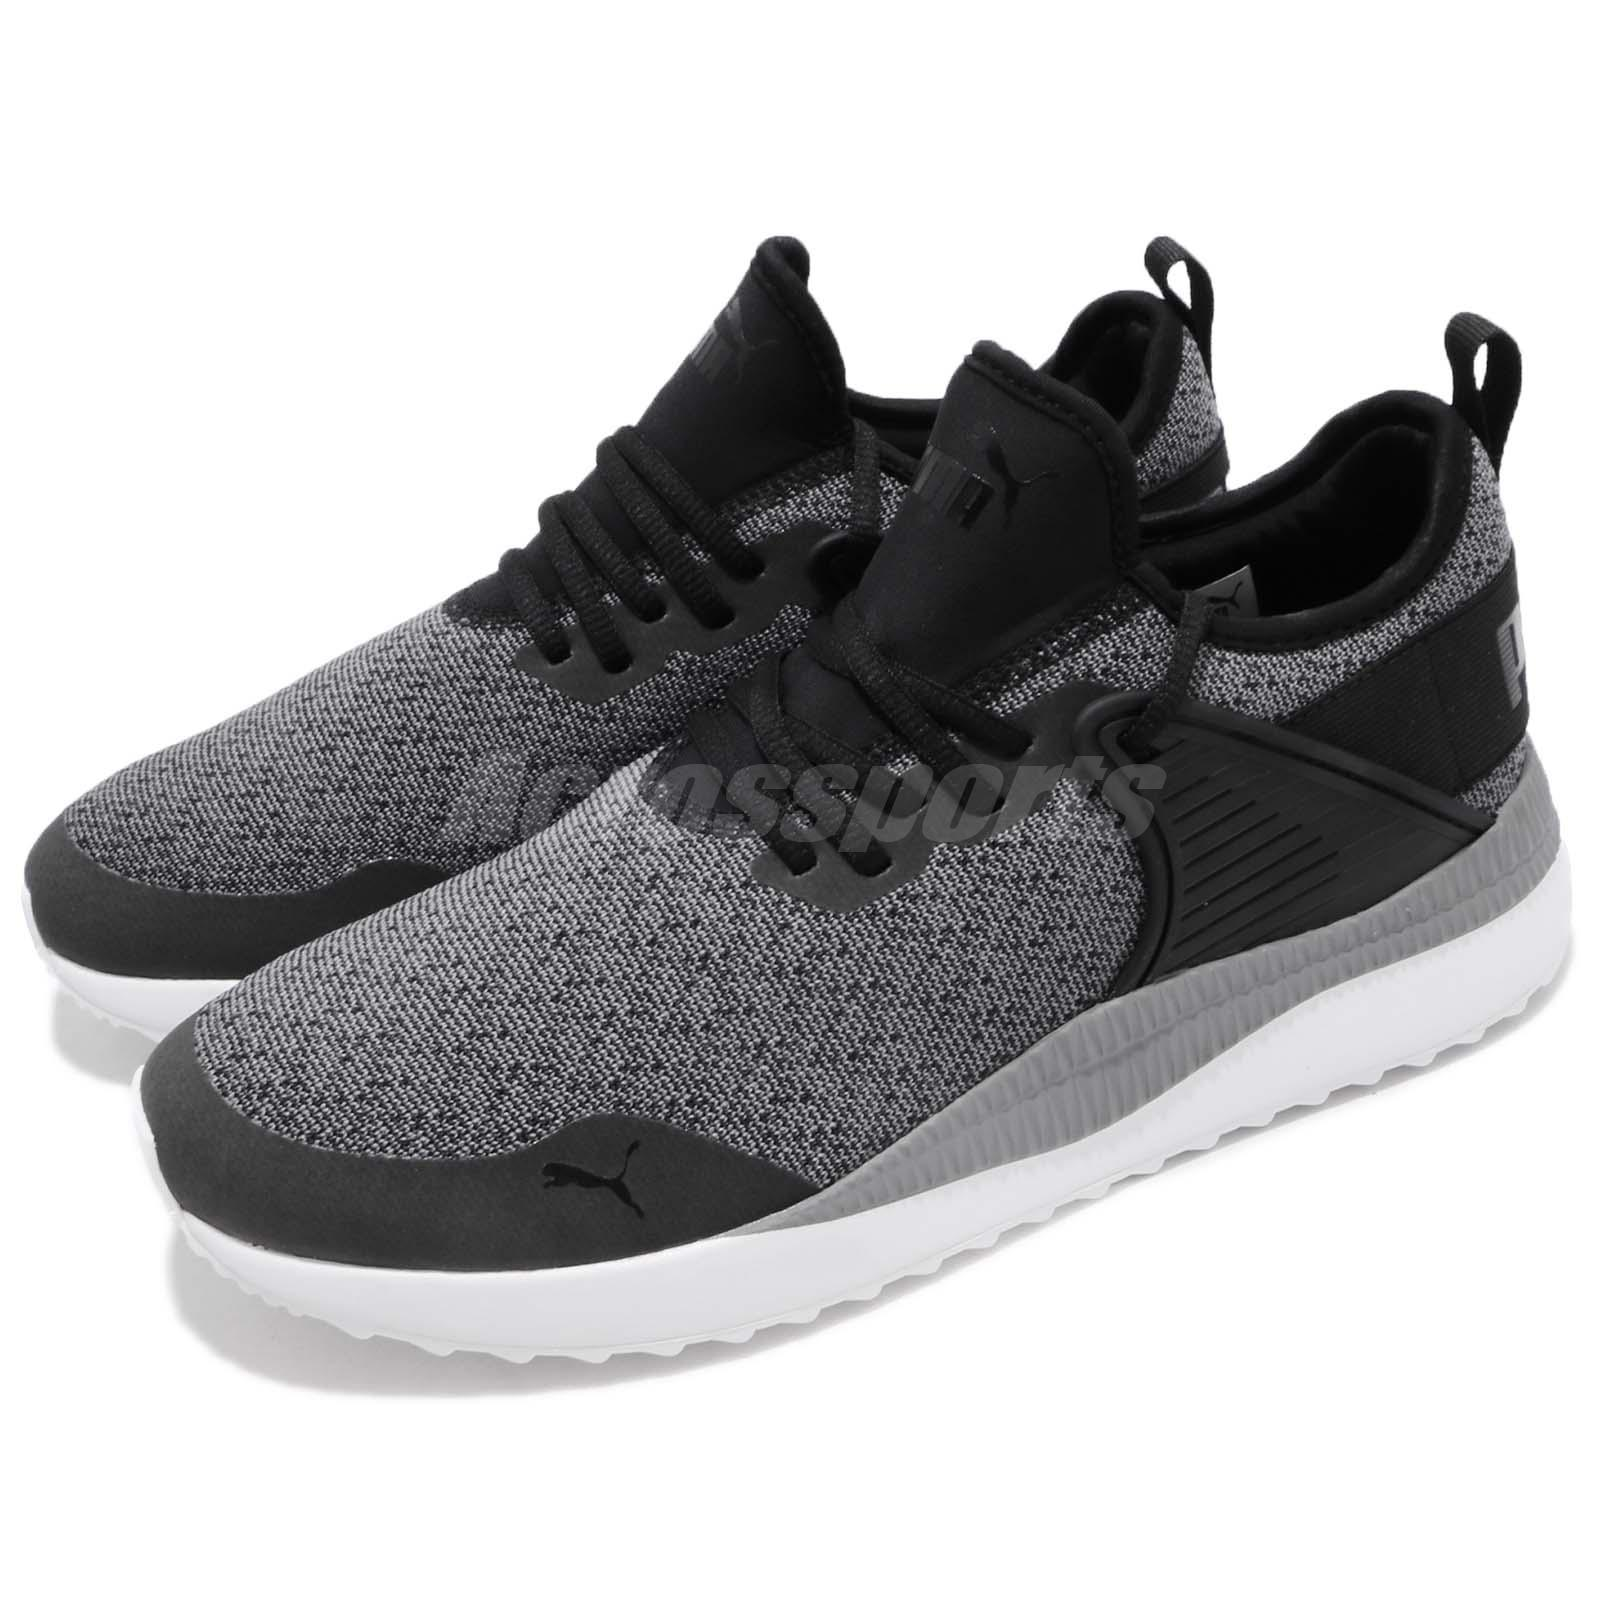 c416276f08cb4b Details about Puma Pacer Next Cage Knit Premium Black Grey Men Running Shoes  Sneaker 366949-01